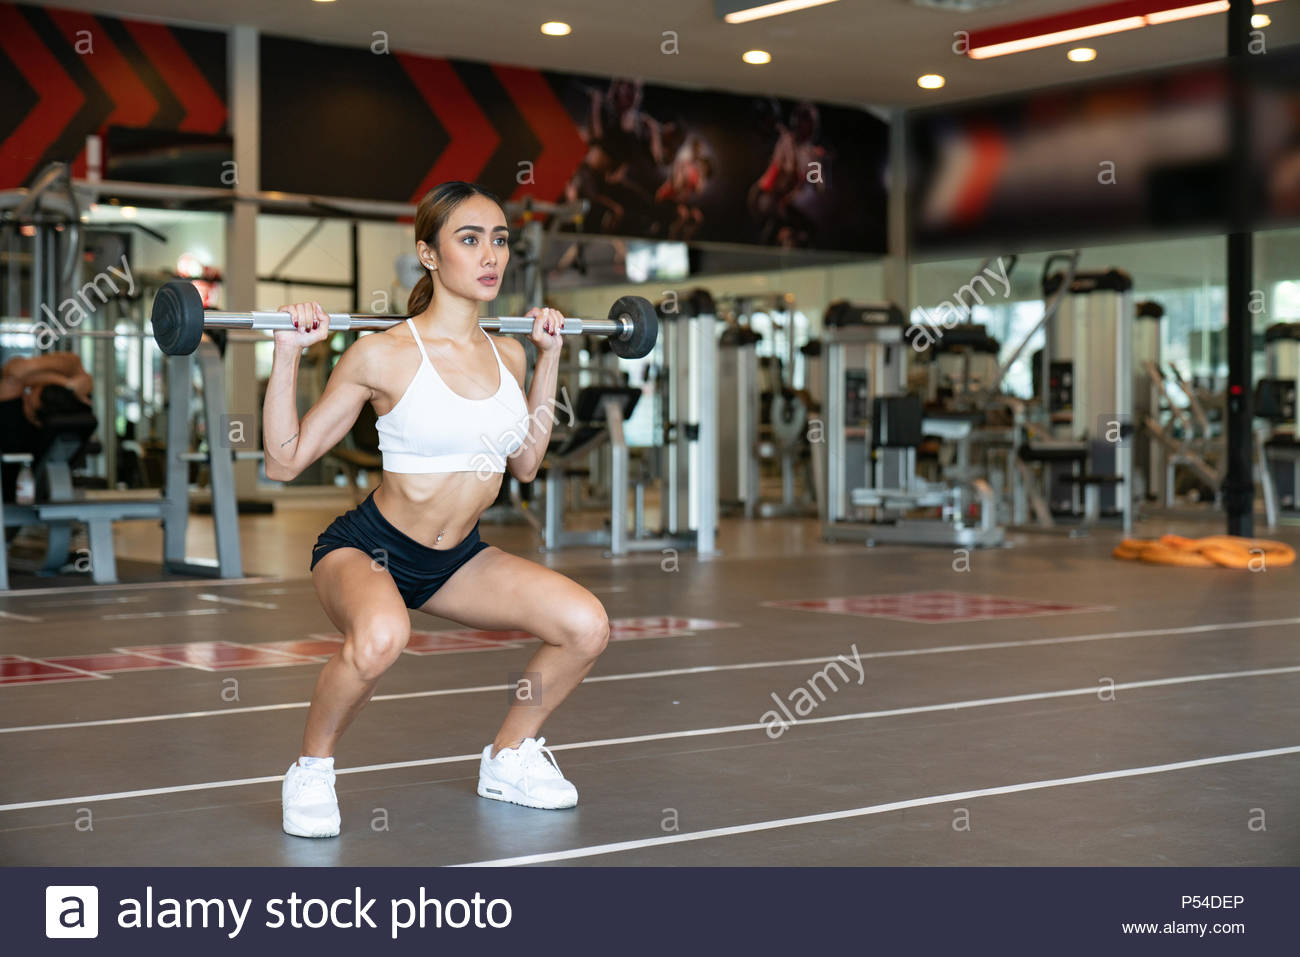 Close Up of young fitness woman executed exercise with exercise-machine Cable Crossover in gym. - Stock Image